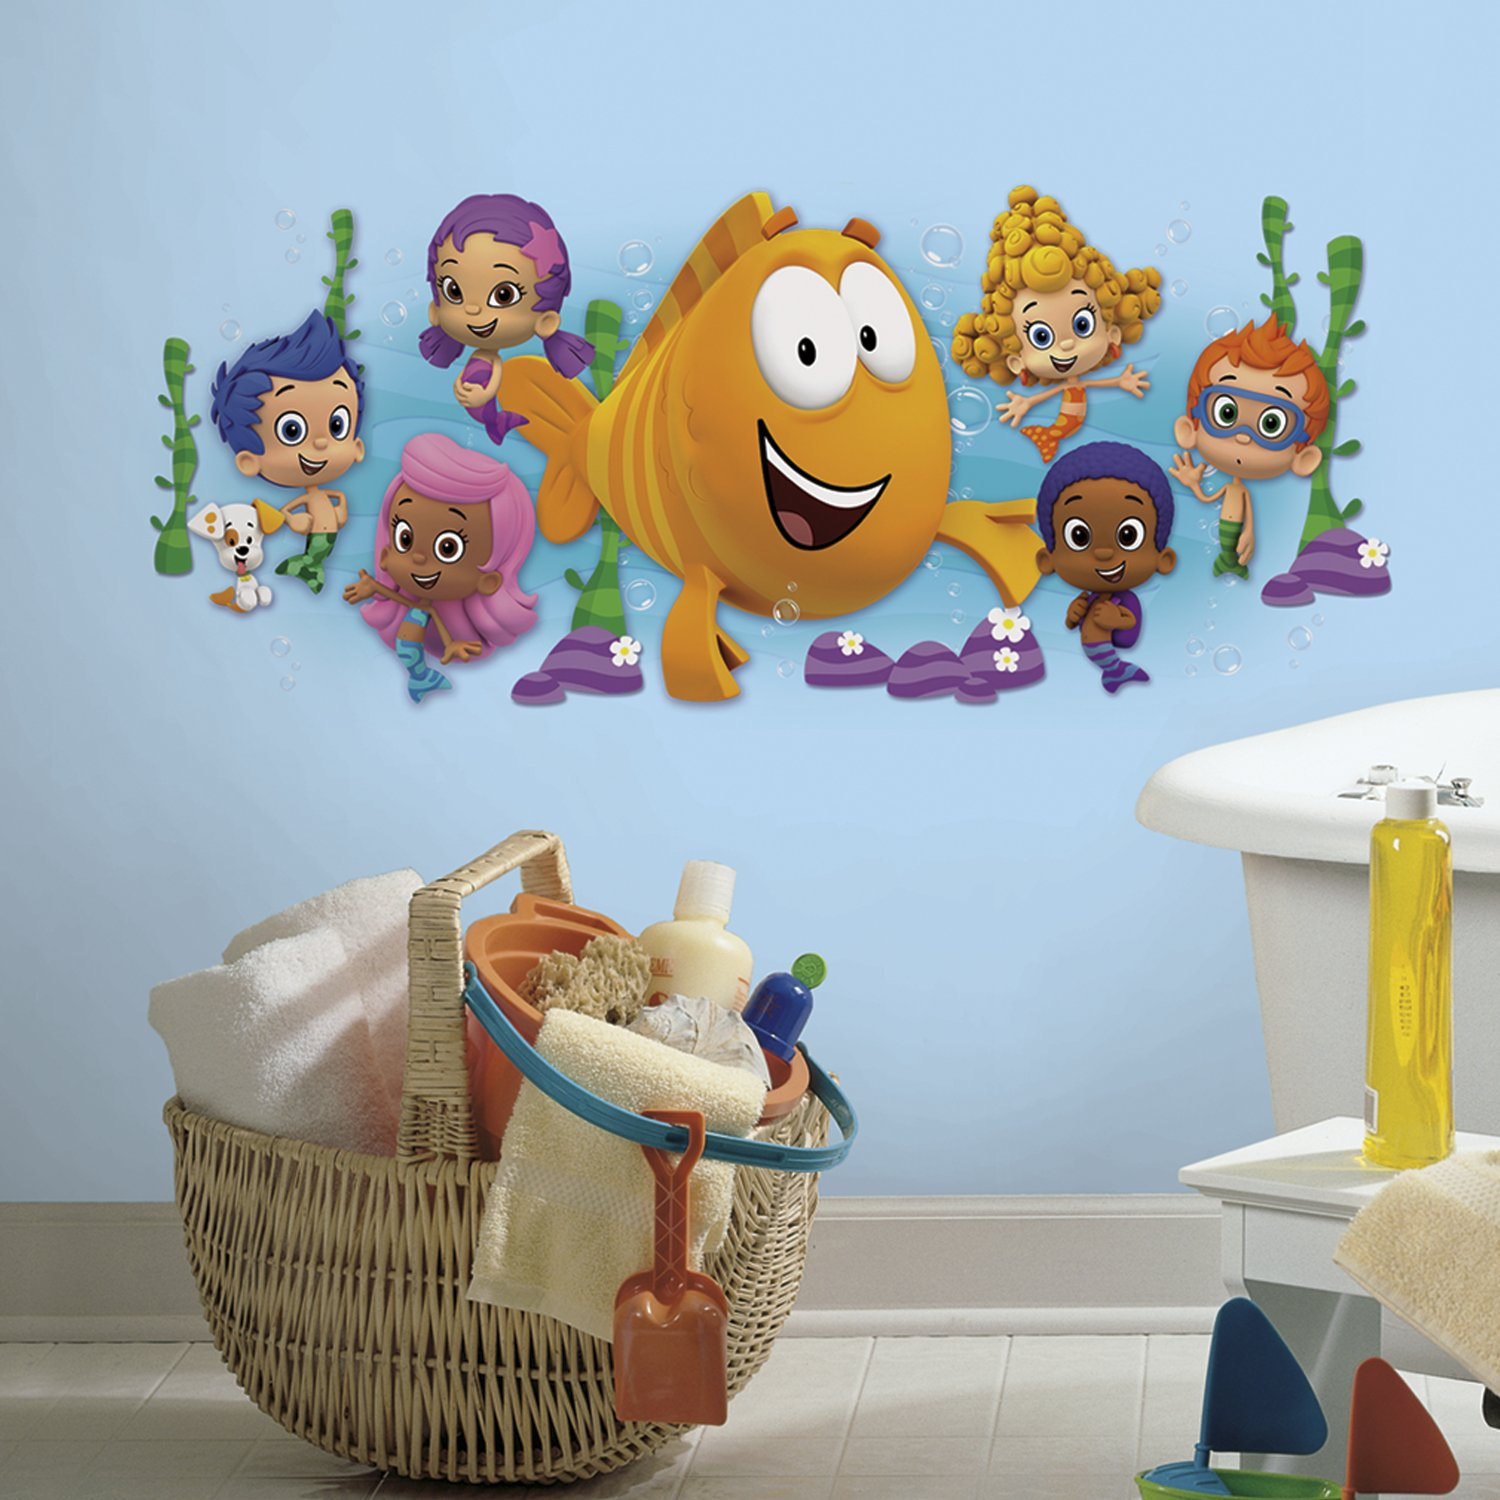 Roommates rmk2774gm bubble guppies character burst peel and stick roommates rmk2774gm bubble guppies character burst peel and stick giant wall decals 18 x 40 amazon amipublicfo Images